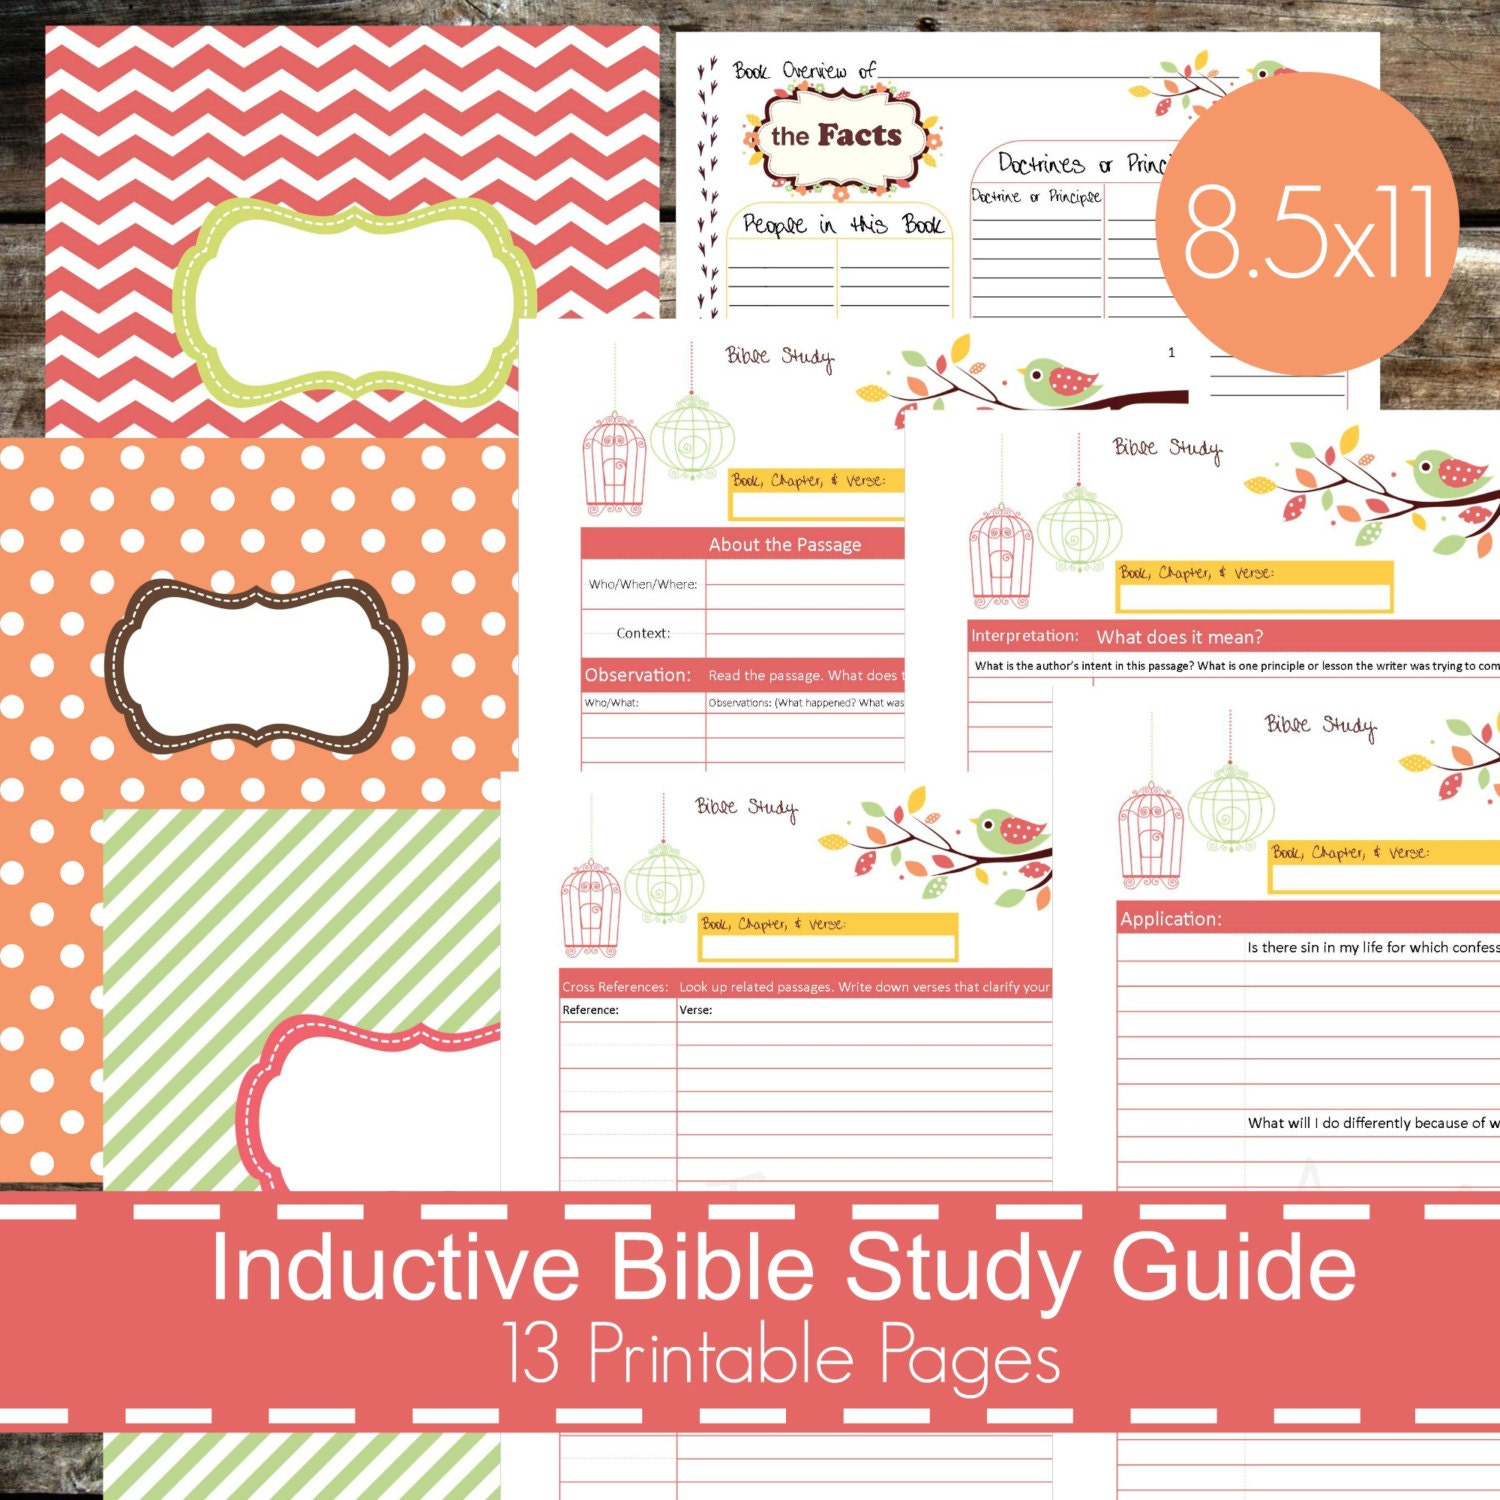 photo about Printable Bible Study Guides titled Inductive Bible Exploration Marketing consultant Printables PDF, Christian bible review, bible magazine, devotional specialist, bible investigation planner - Chook Concept